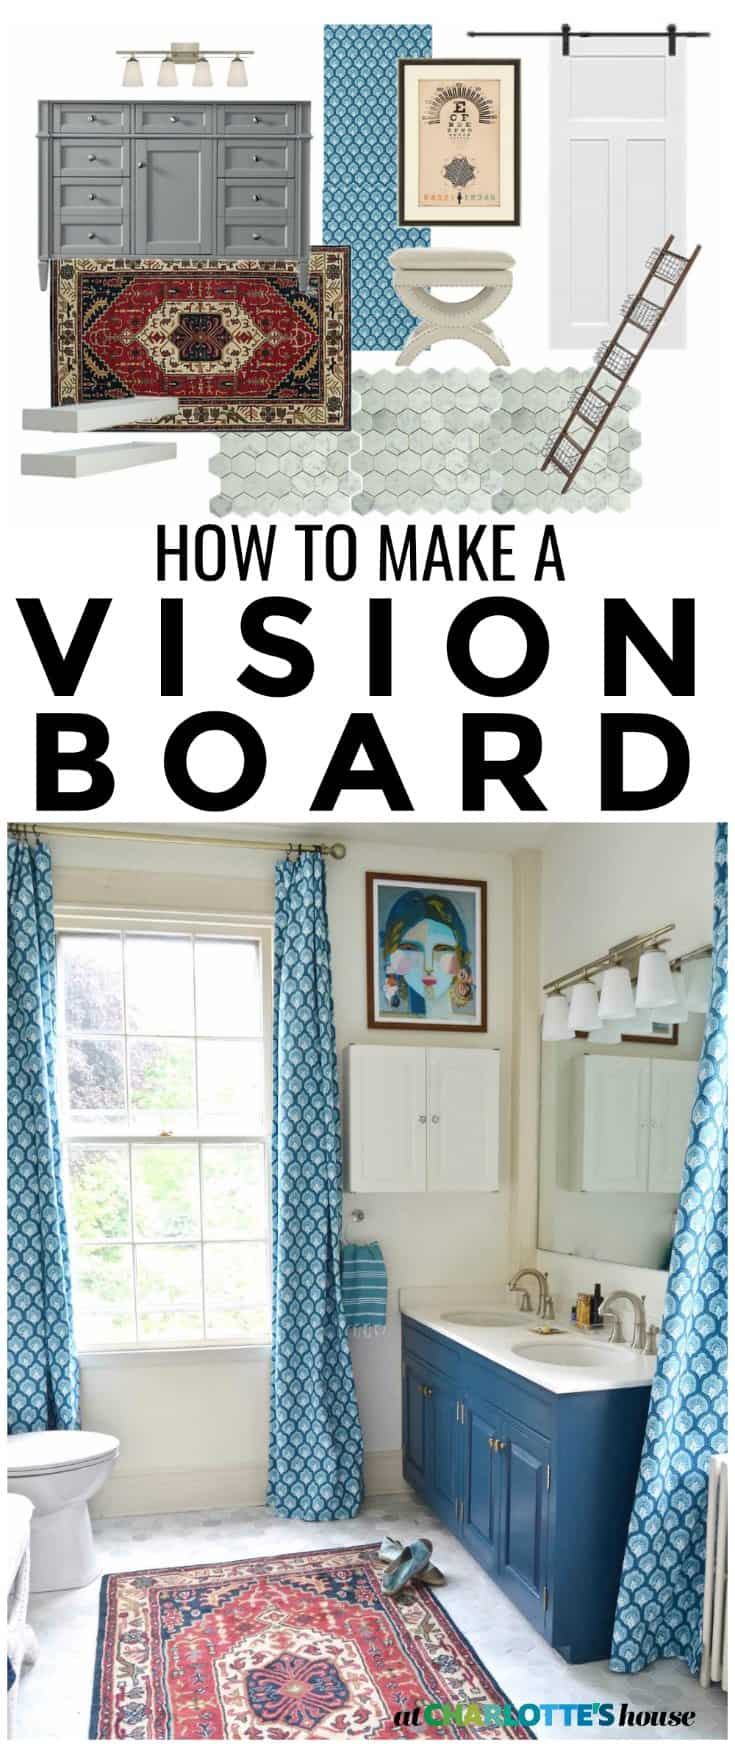 Tips for planning a room and making an awesome vision board to help you plan your space!